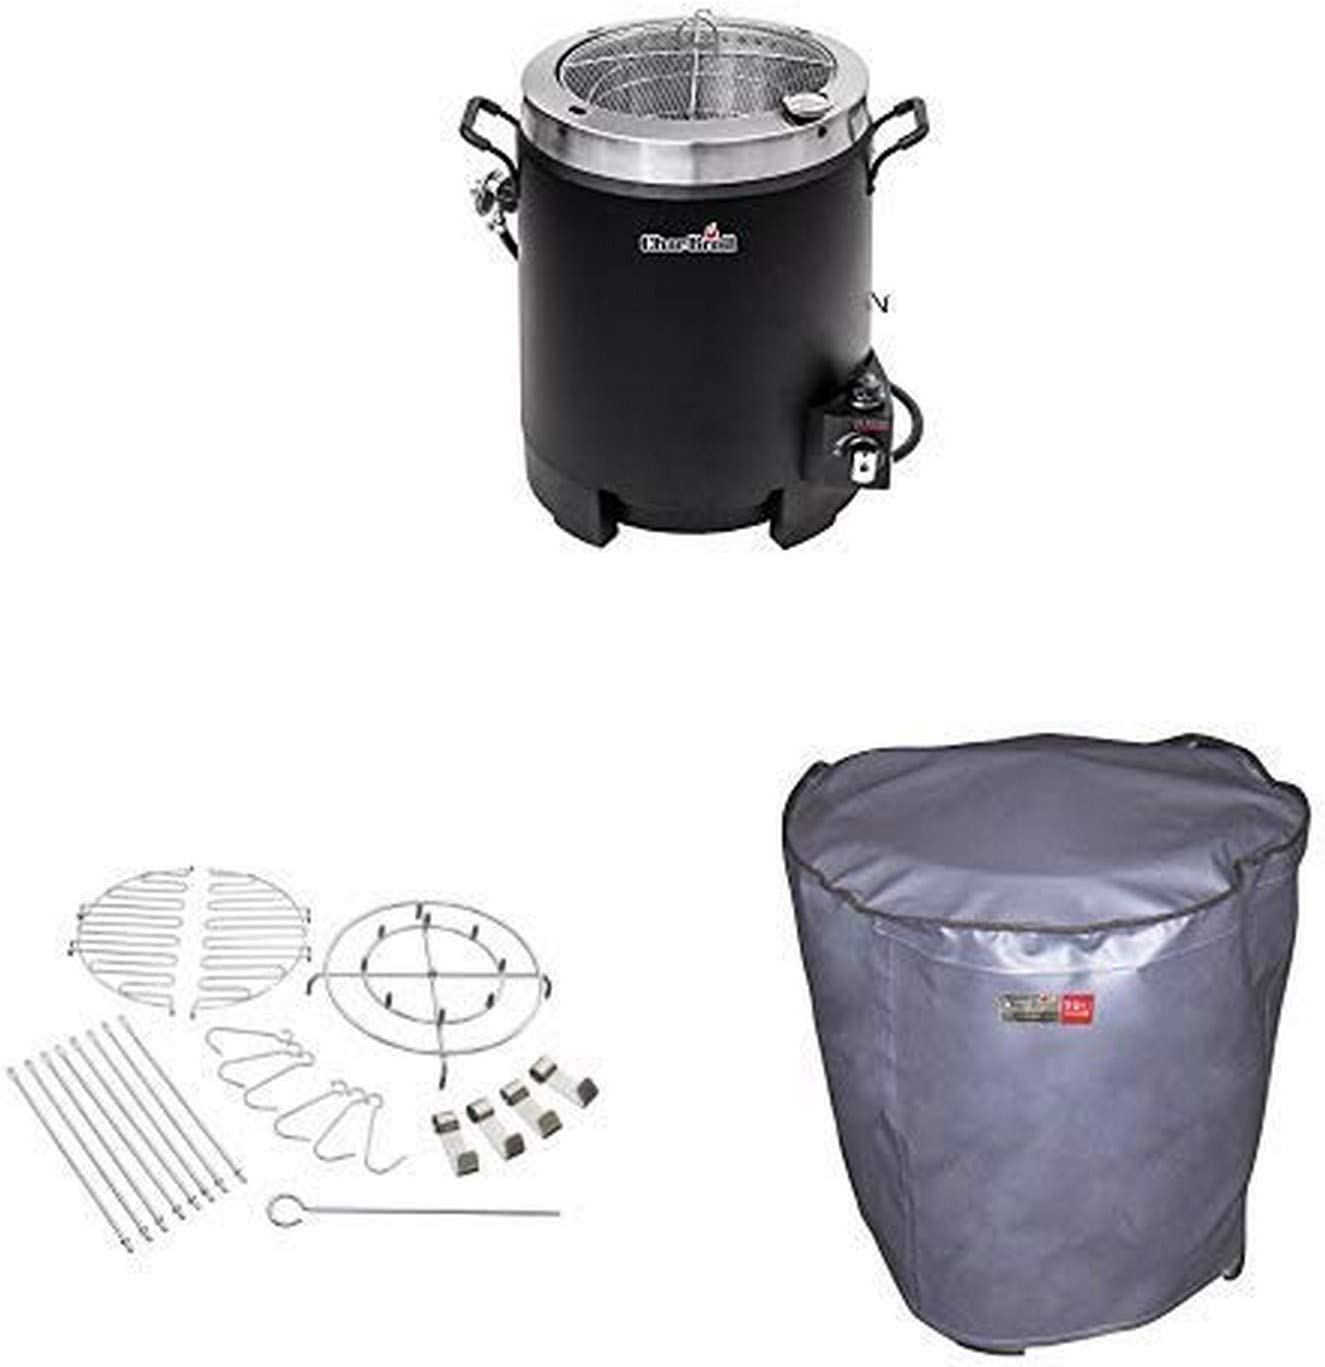 Char-Broil Big Easy Oil-less Liquid Propane Turkey Fryer with 22-Piece Accessory Kit and Cover